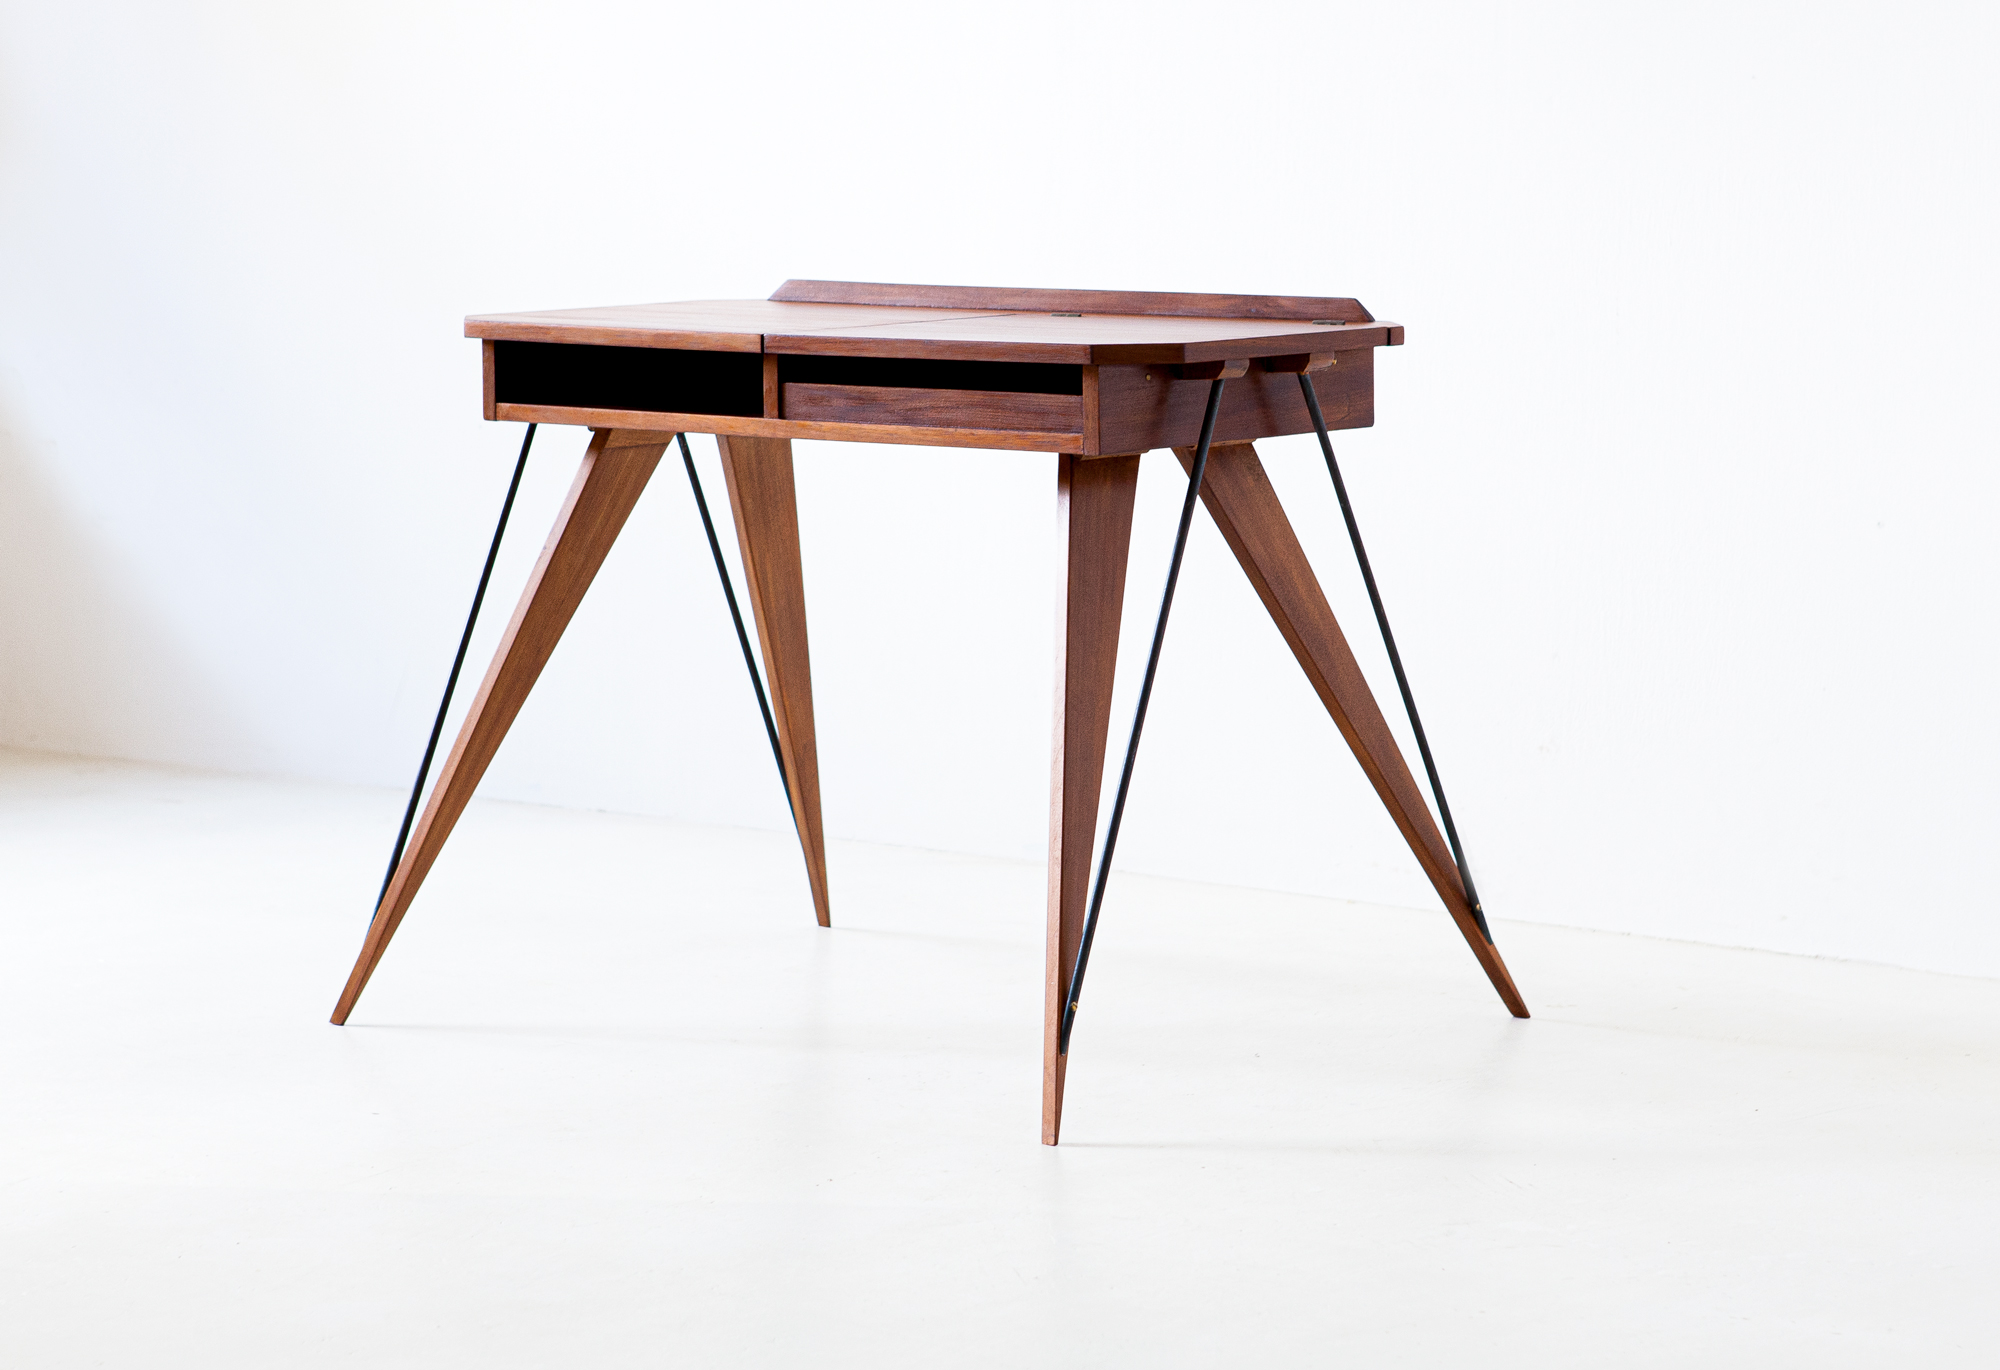 1950s-modern-console-desk-with-compass-legs-5-dt33